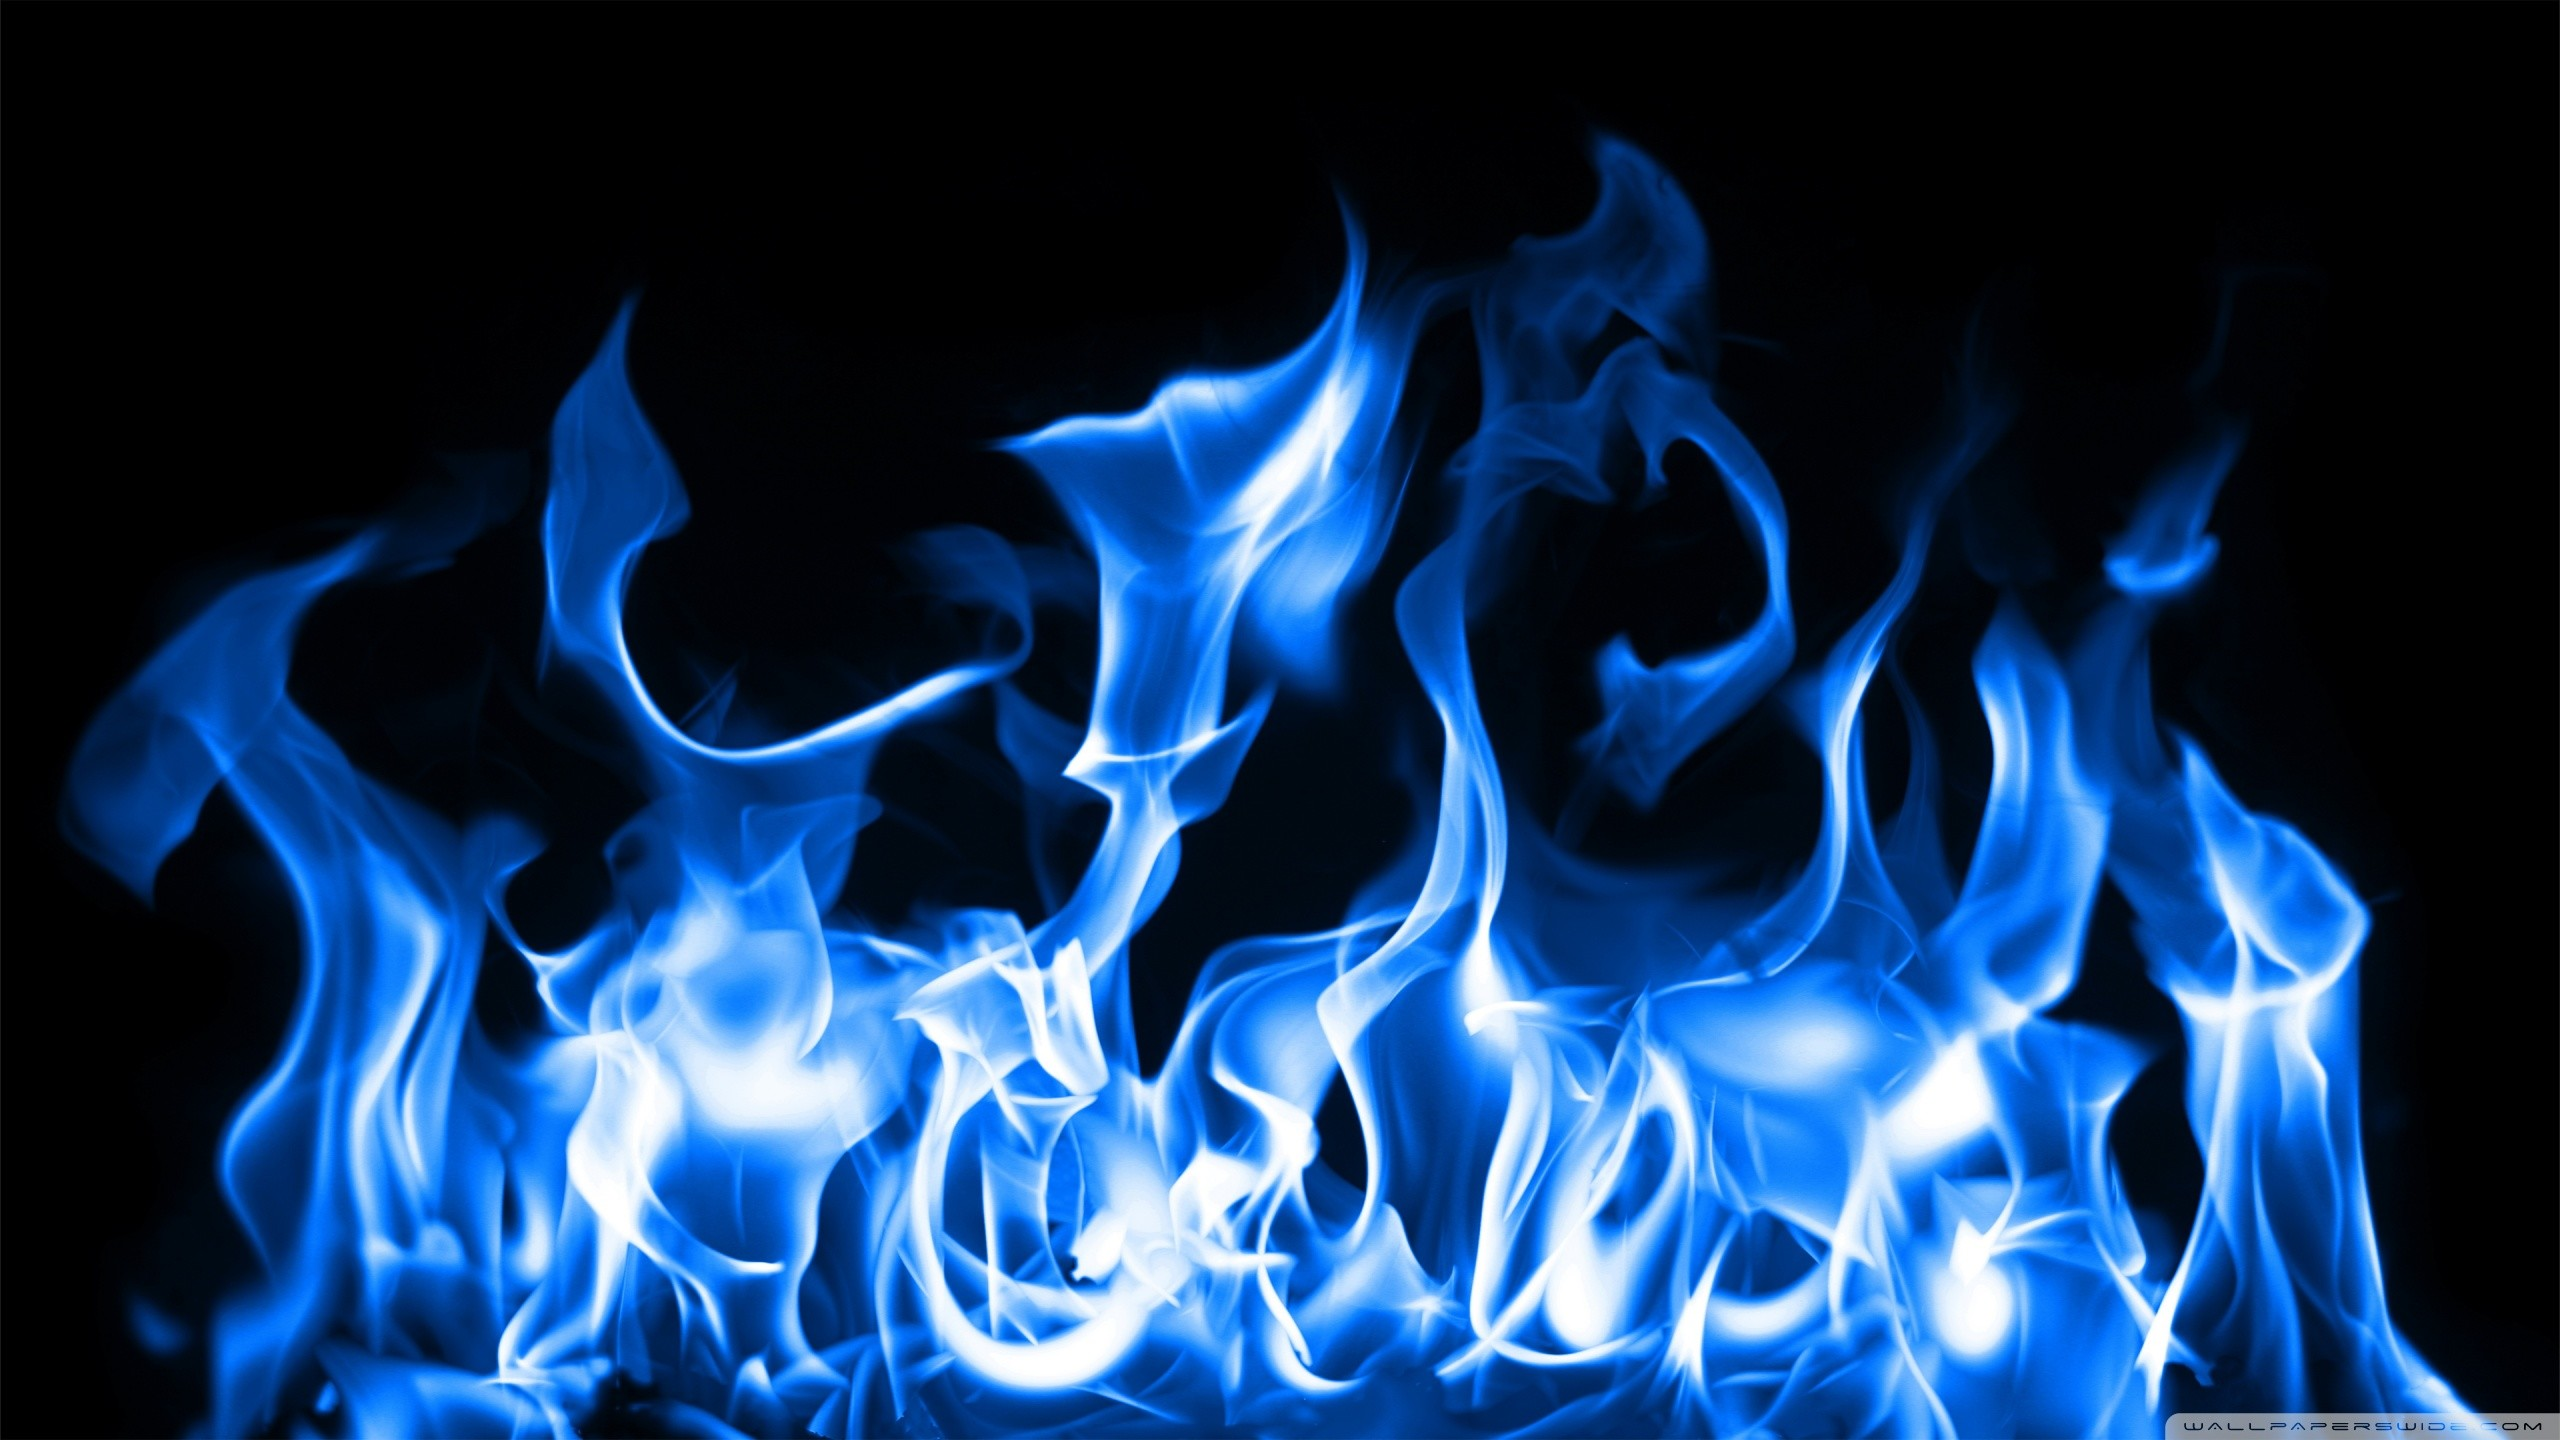 Cool Blue Fire Wallpapers